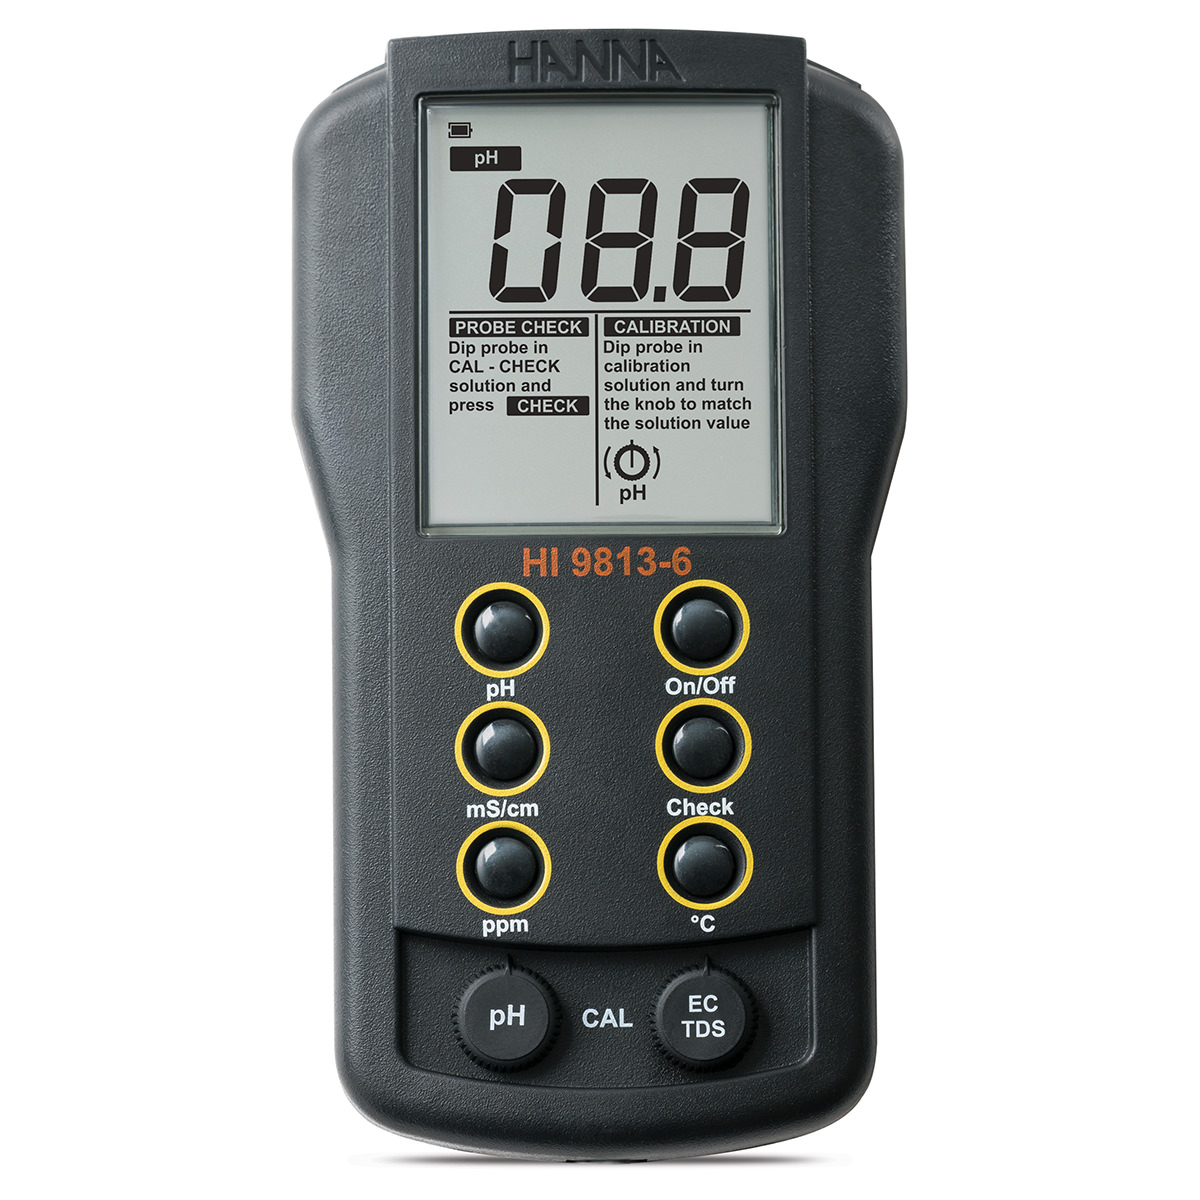 Portable pH/EC/TDS/Temperature Meter with CAL Check™ - HI9813-6